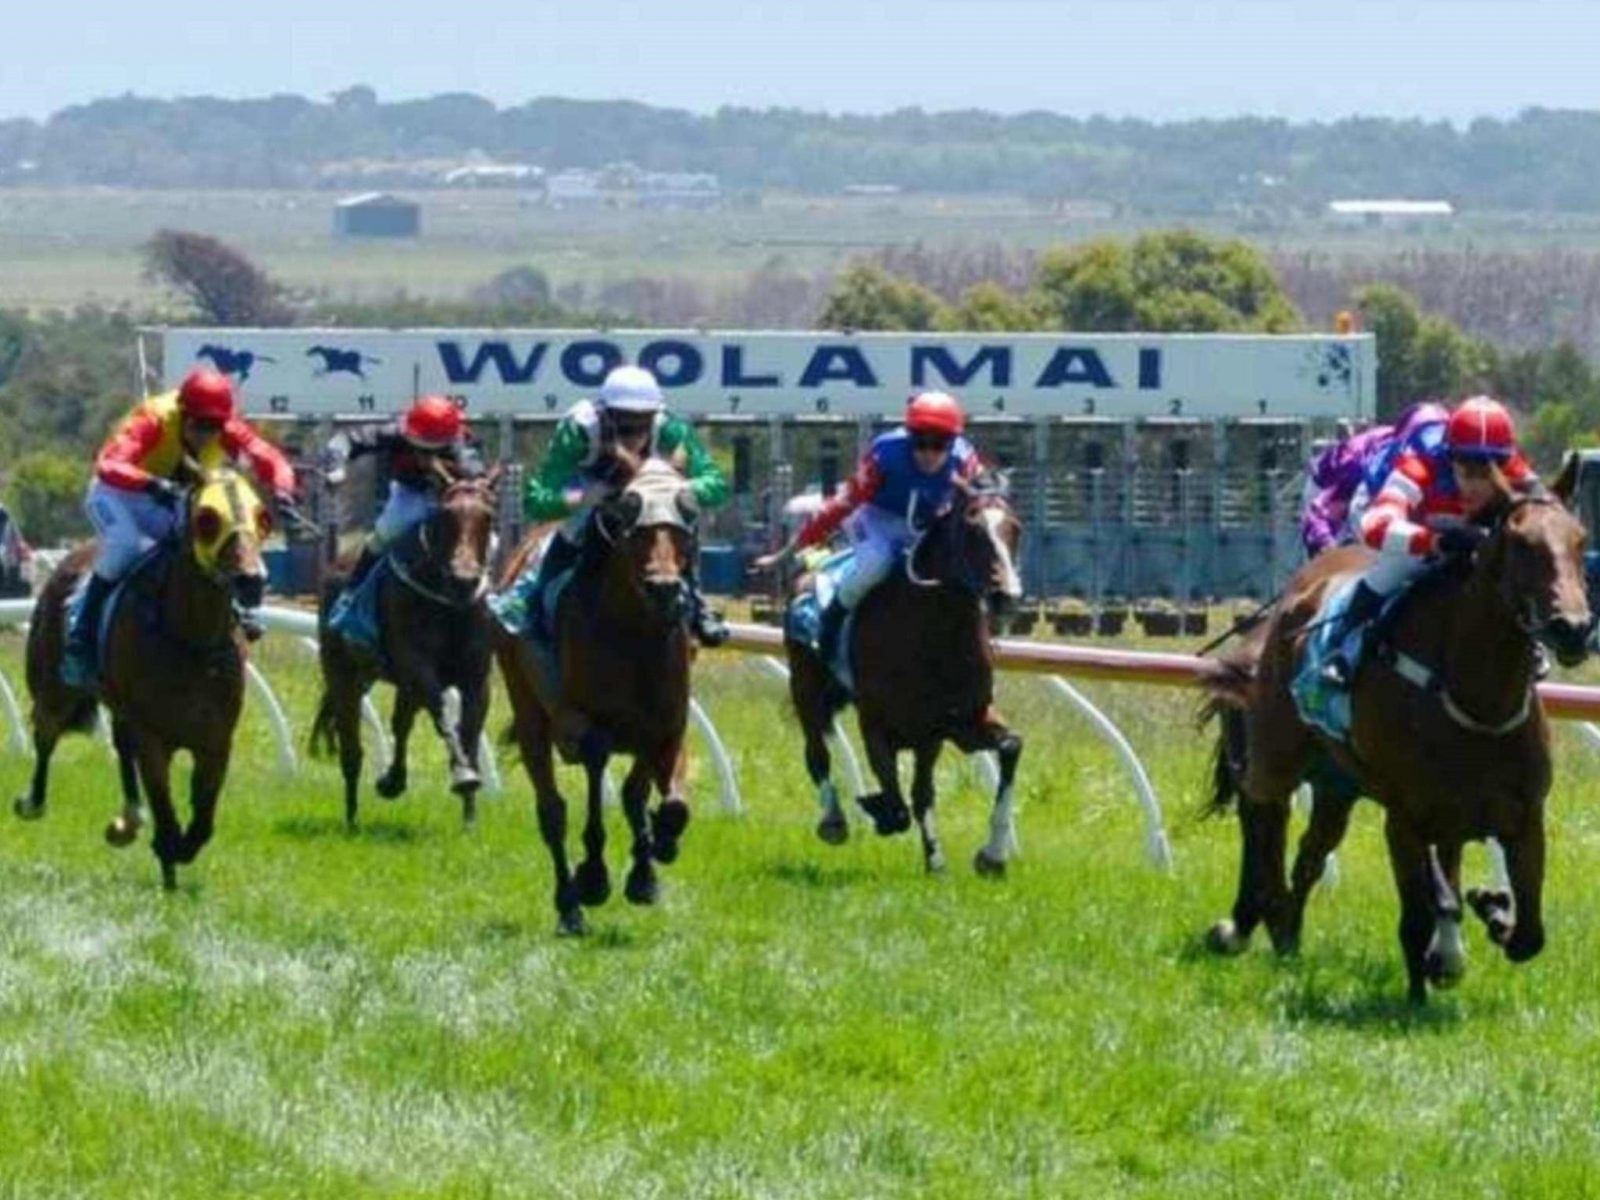 Woolamai Country Horse Racing